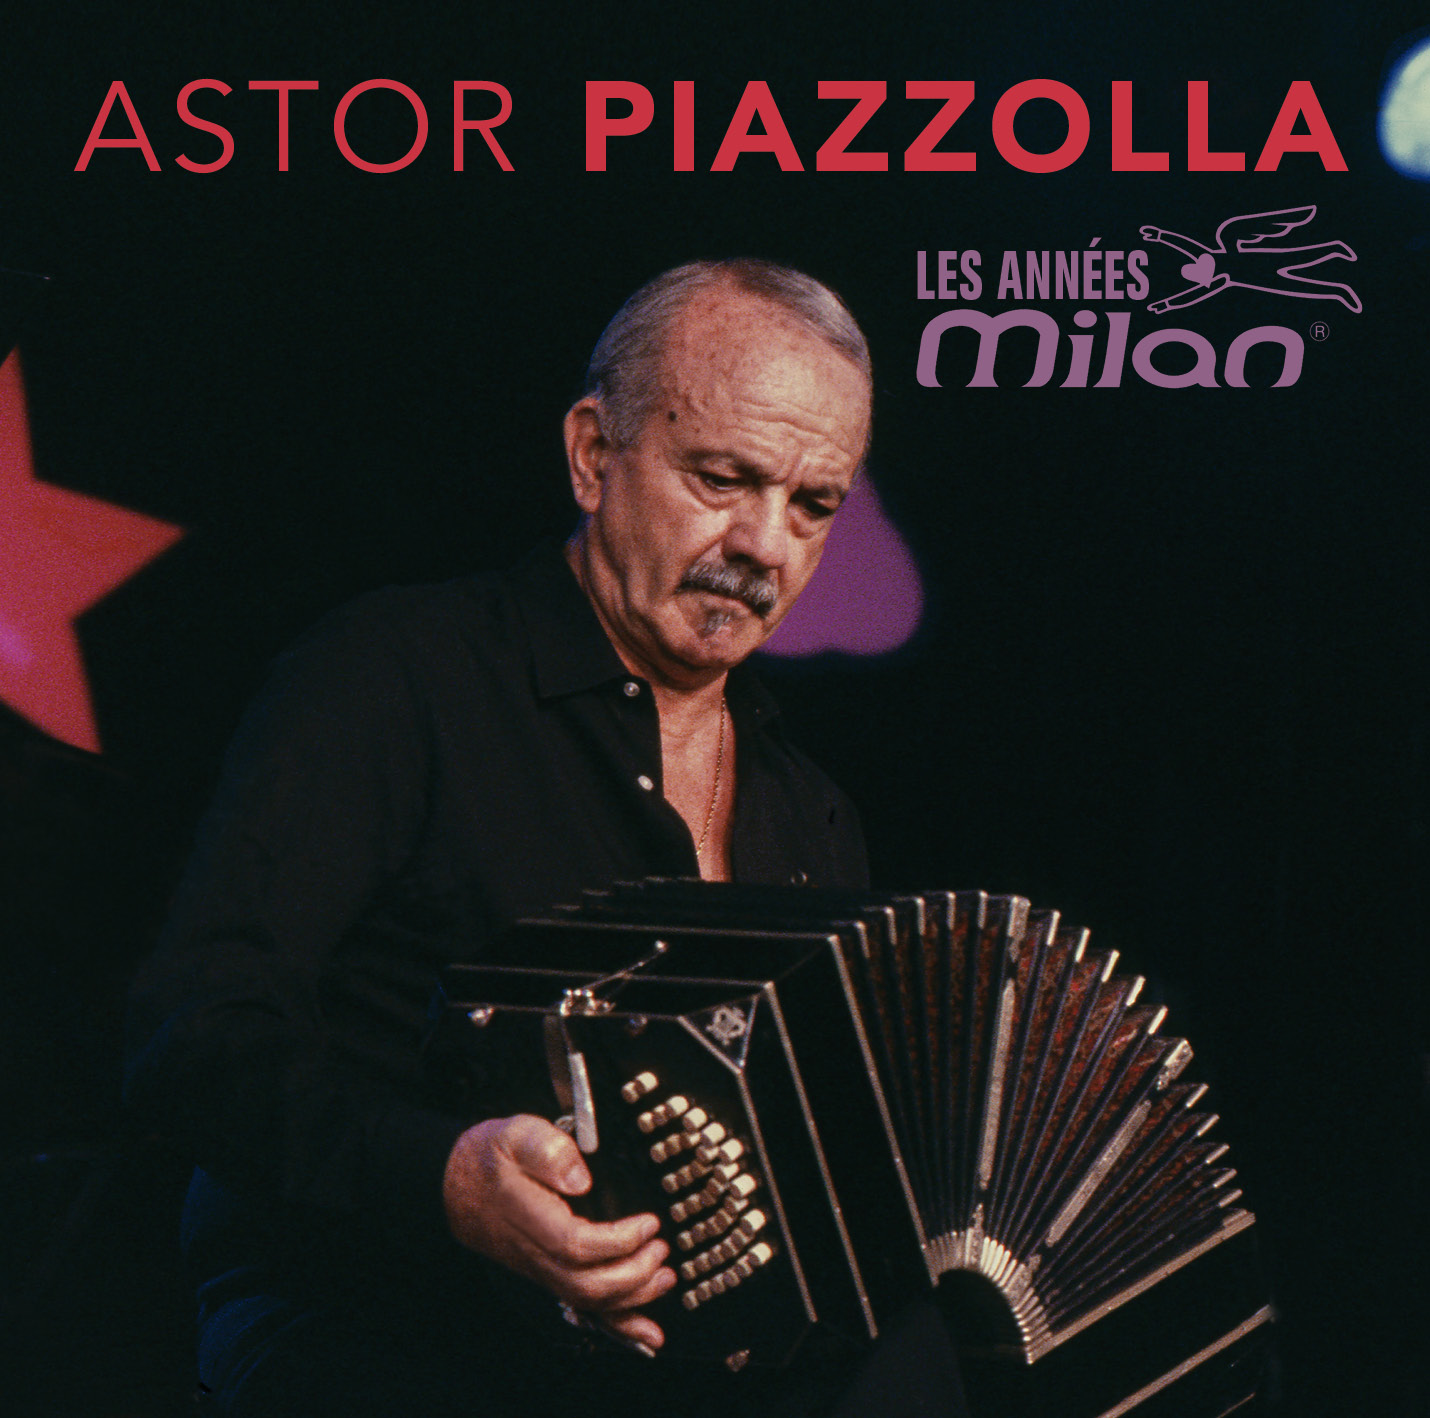 Astor Piazzolla : Les années Milan